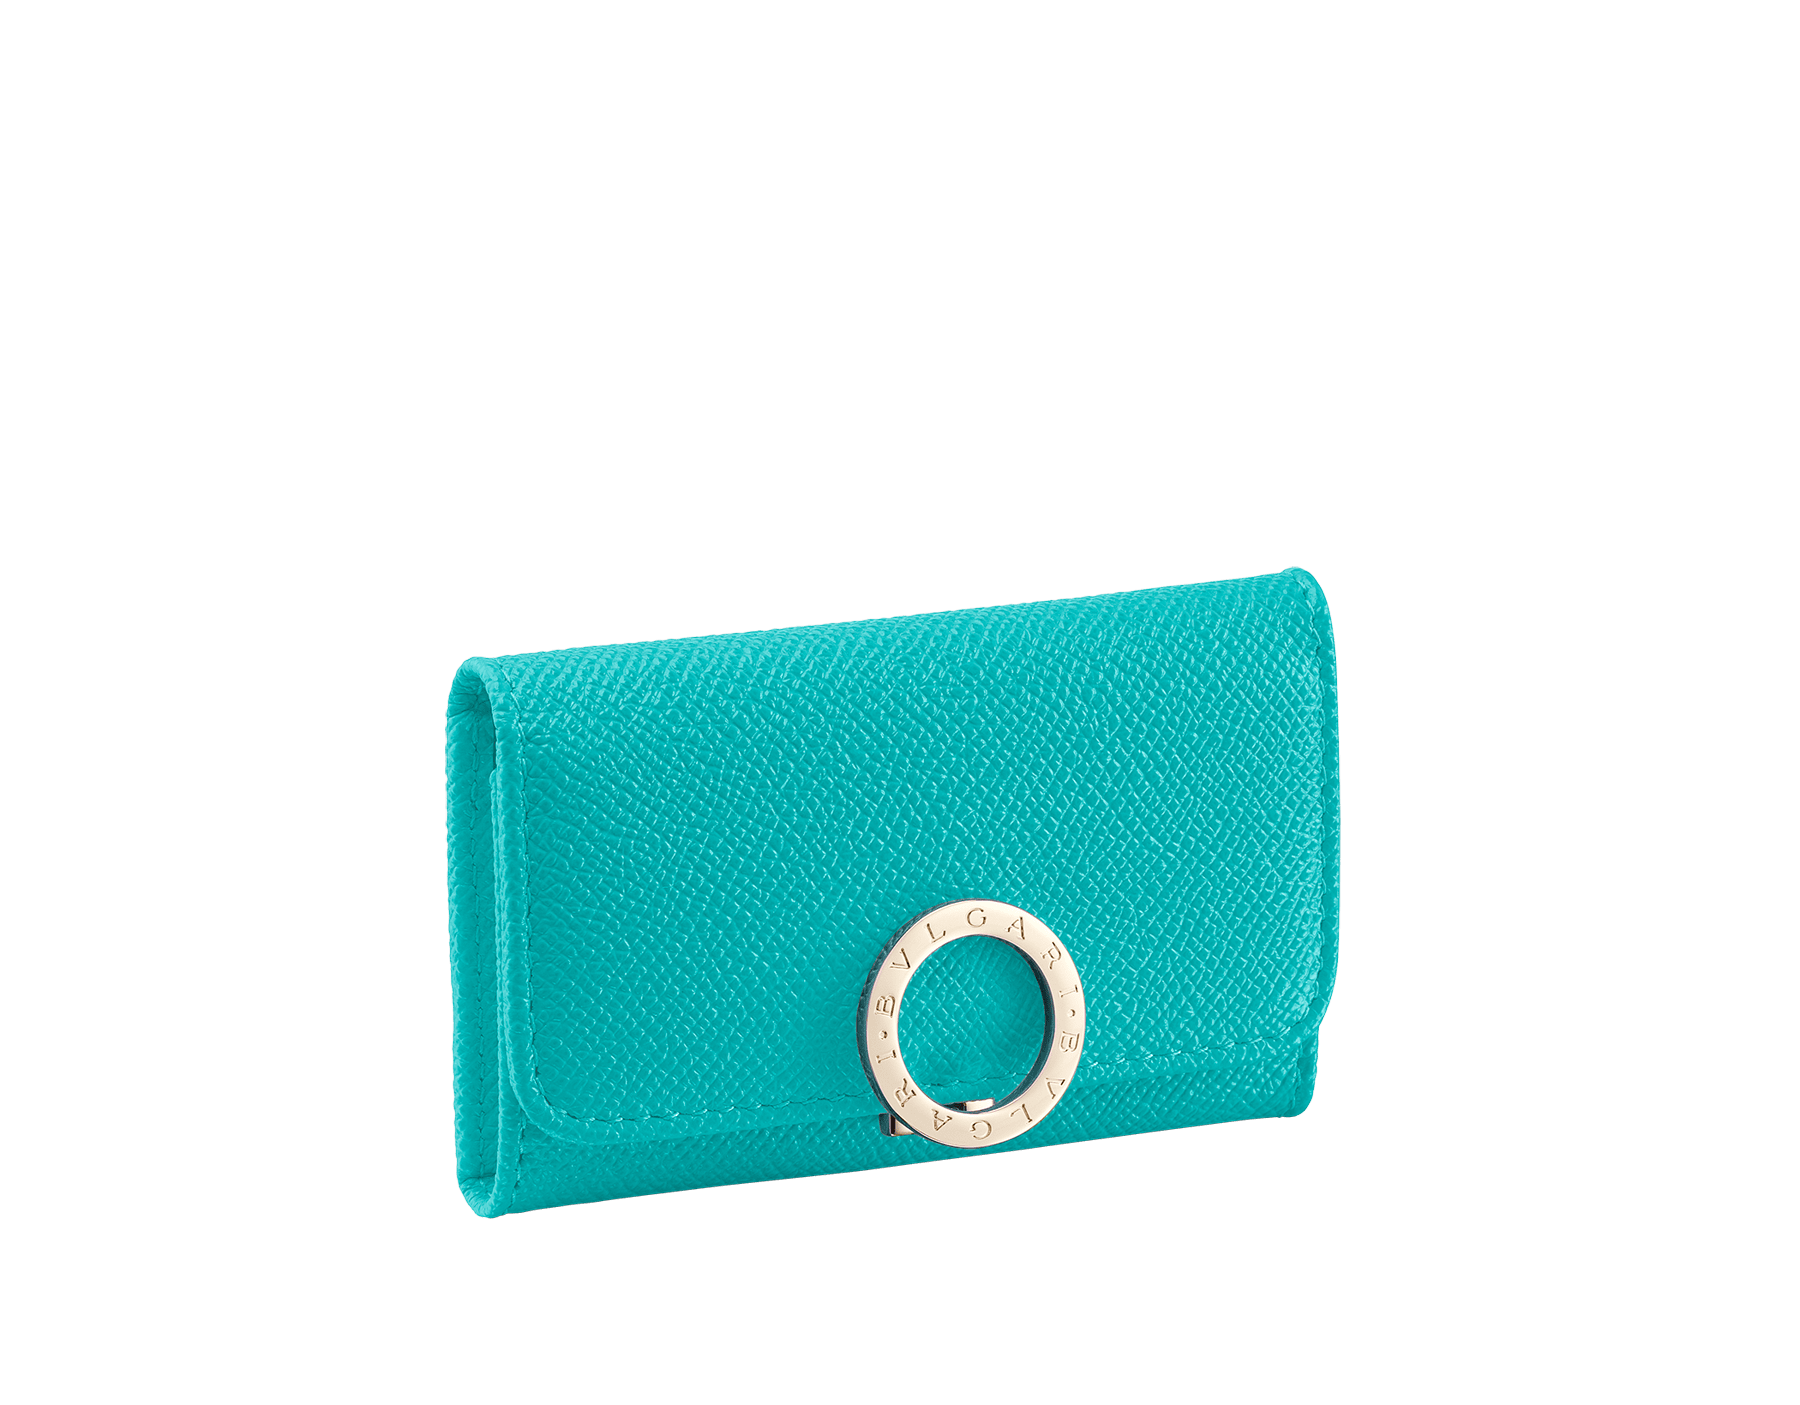 """""""BVLGARI BVLGARI"""" small key holder in Capri turquoise bright grain calf leather and black nappa leather. Iconic logo clip closure in light gold plated brass. 579-KEYHOLDER-Sb image 1"""